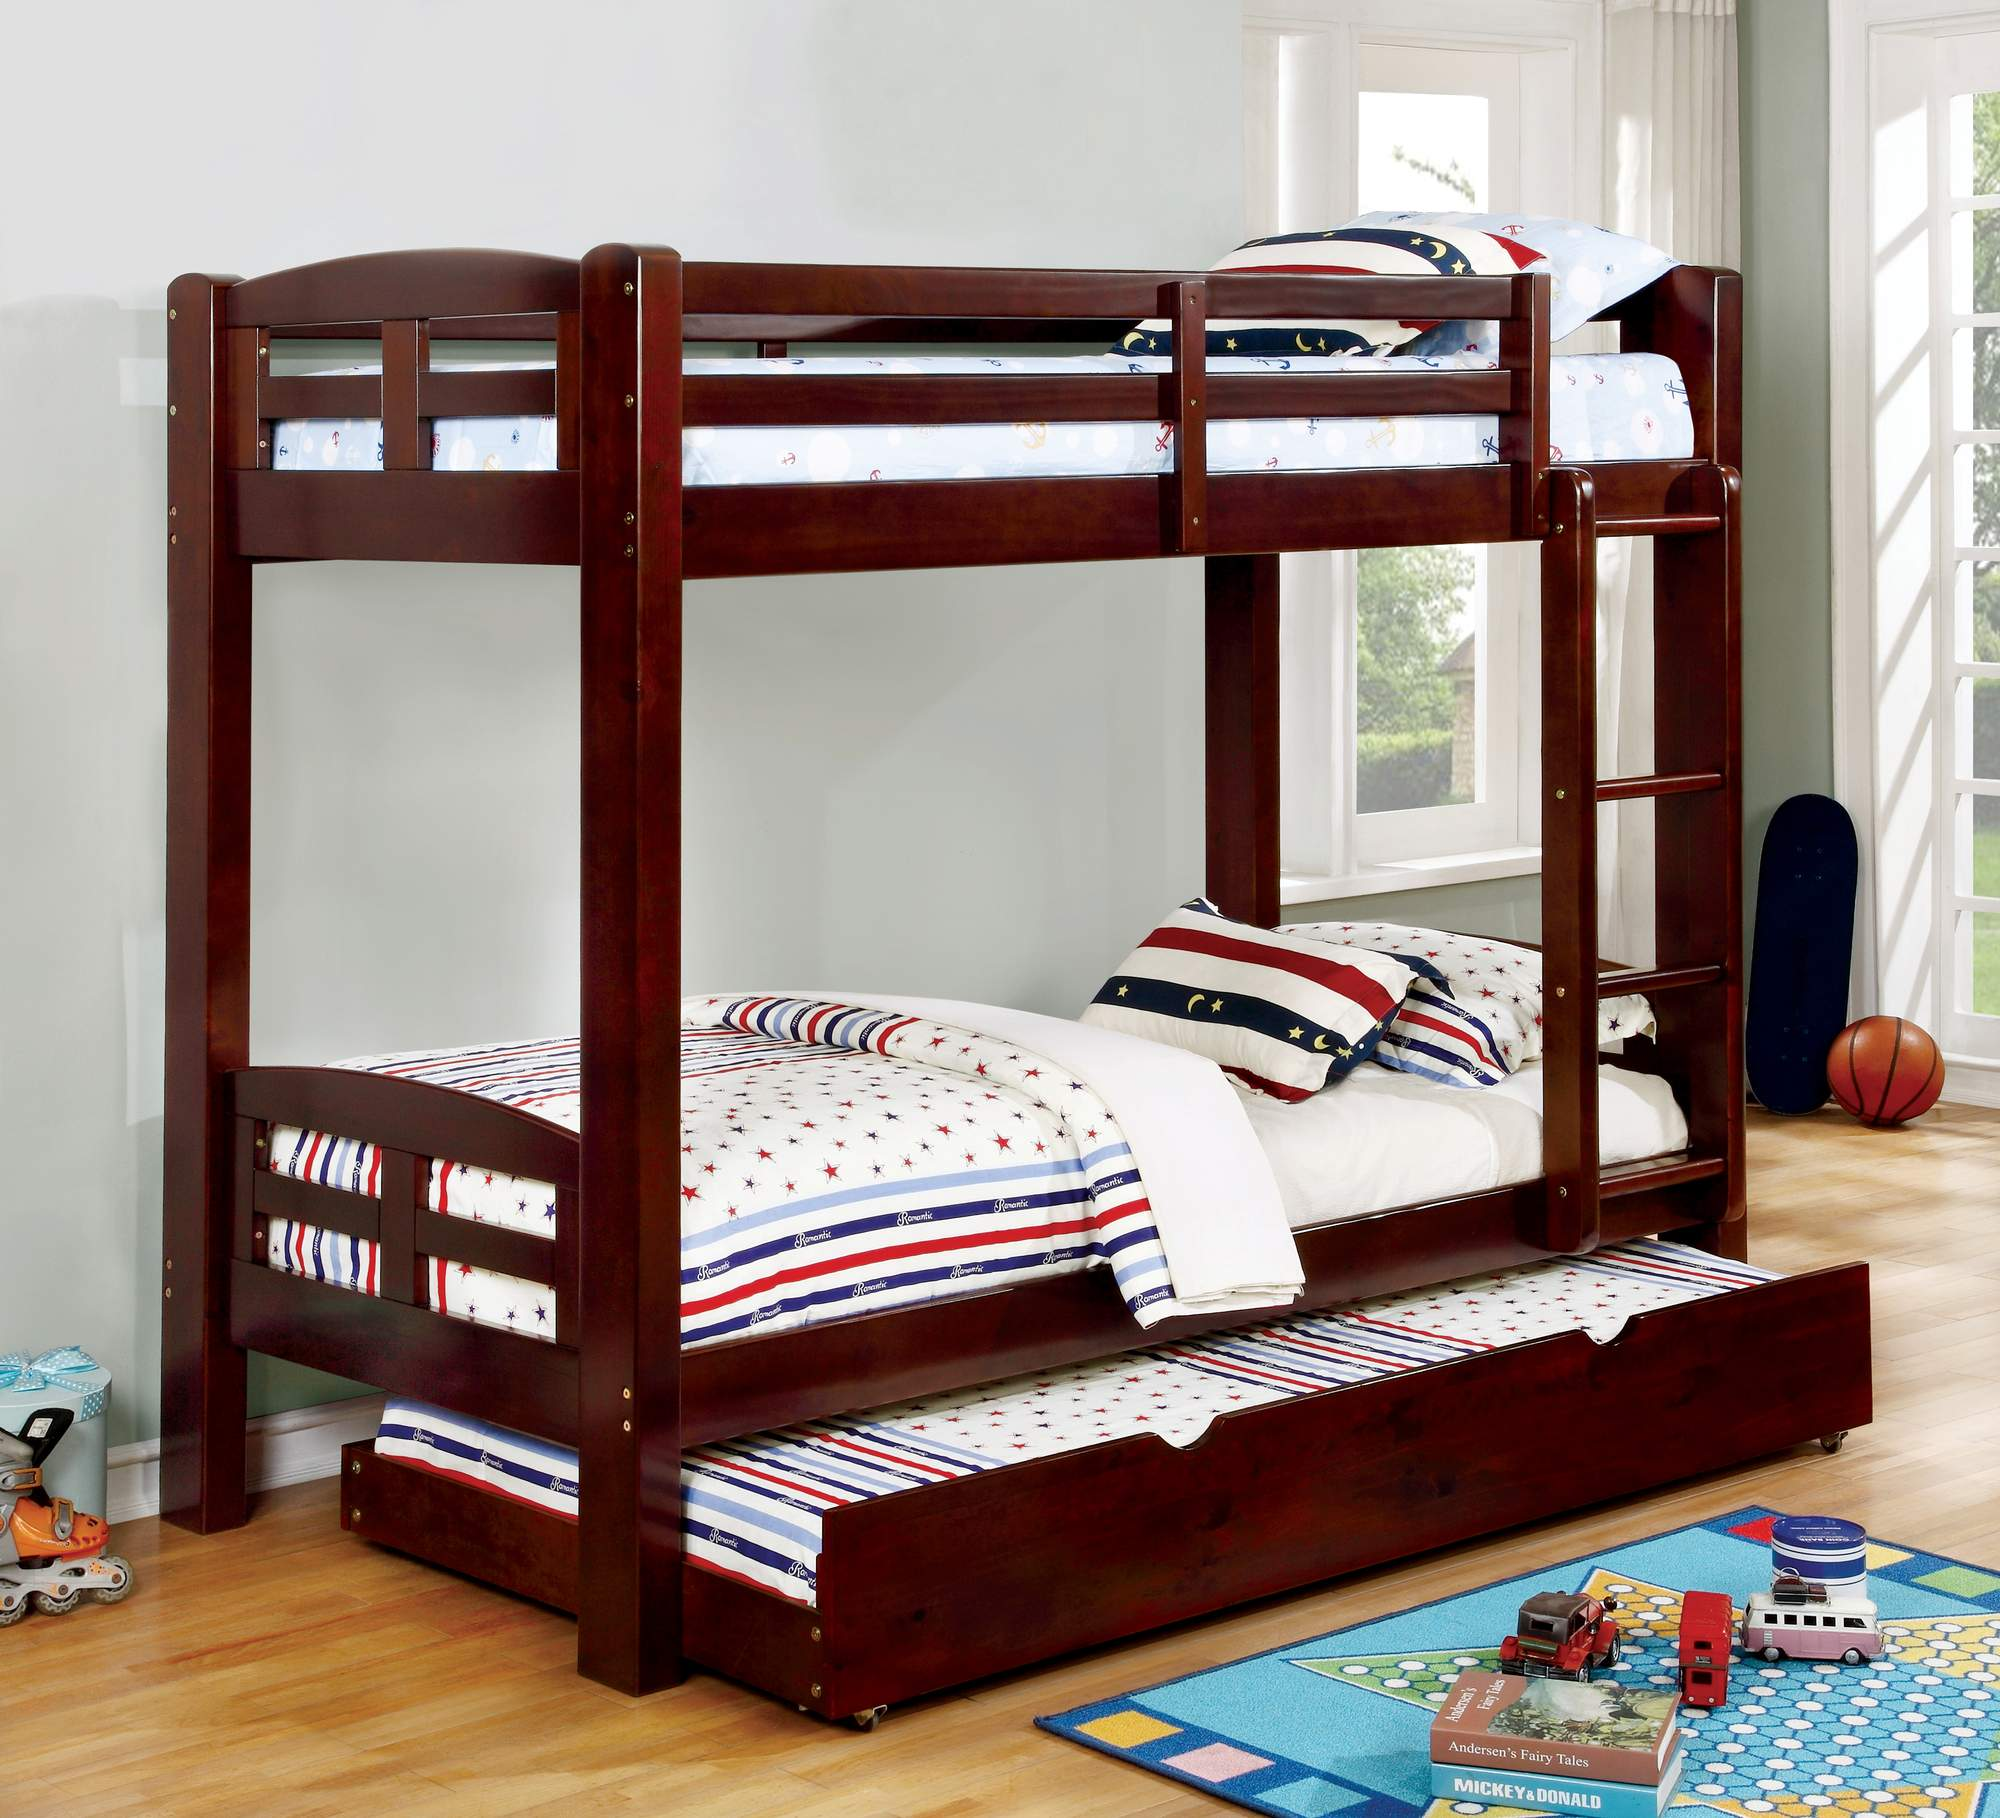 Furniture of America Sophia Twin Over Twin Wooden Bunk Bed, Multiple Colors